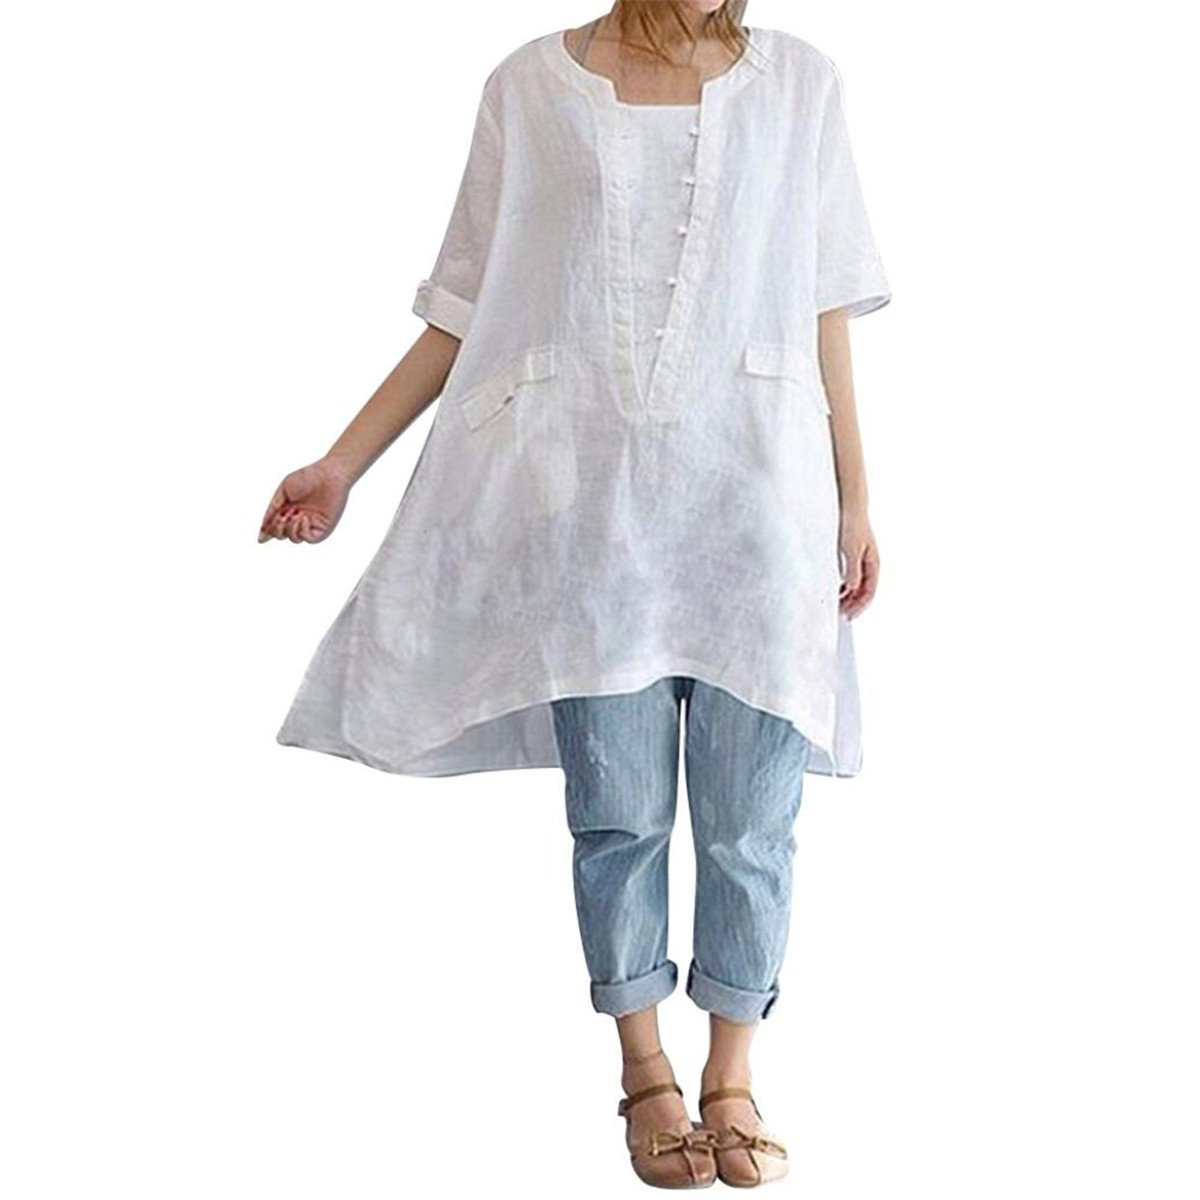 71126ce39d About the product ❤️Street Fashion; Casual Loose Fit; Holiday----Long Sleeve  Thermal Henley T-Shirt Loose-fit Tunic Top Women Batwing Tops Casual Long  ...